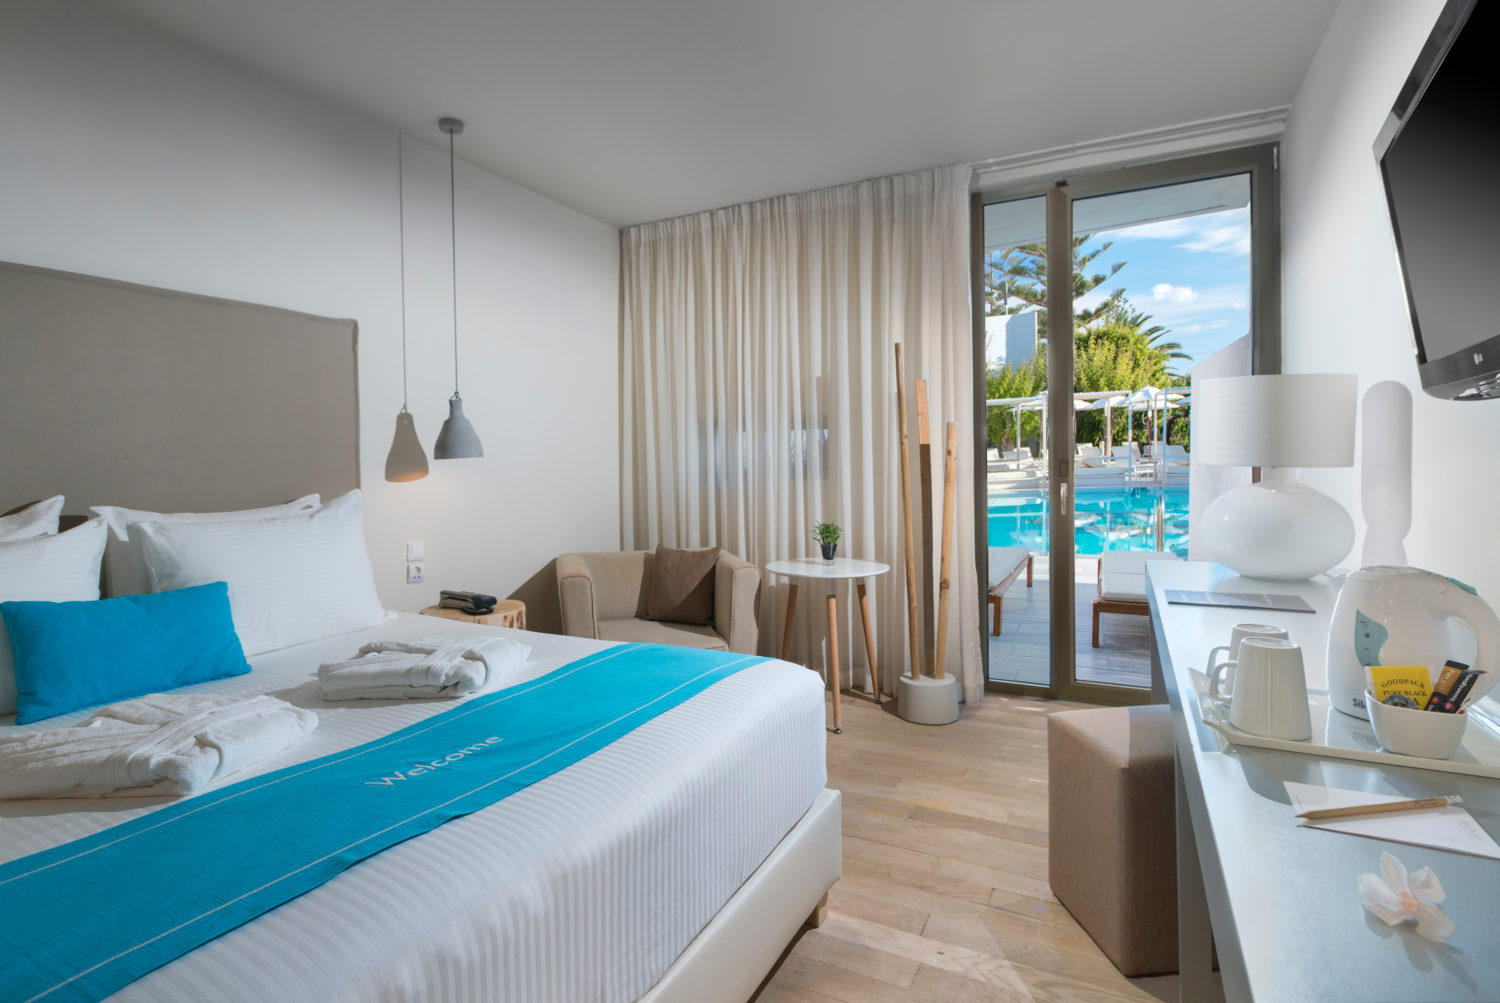 CASUAL SWIM-UP ROOM Island Hotel Kreta